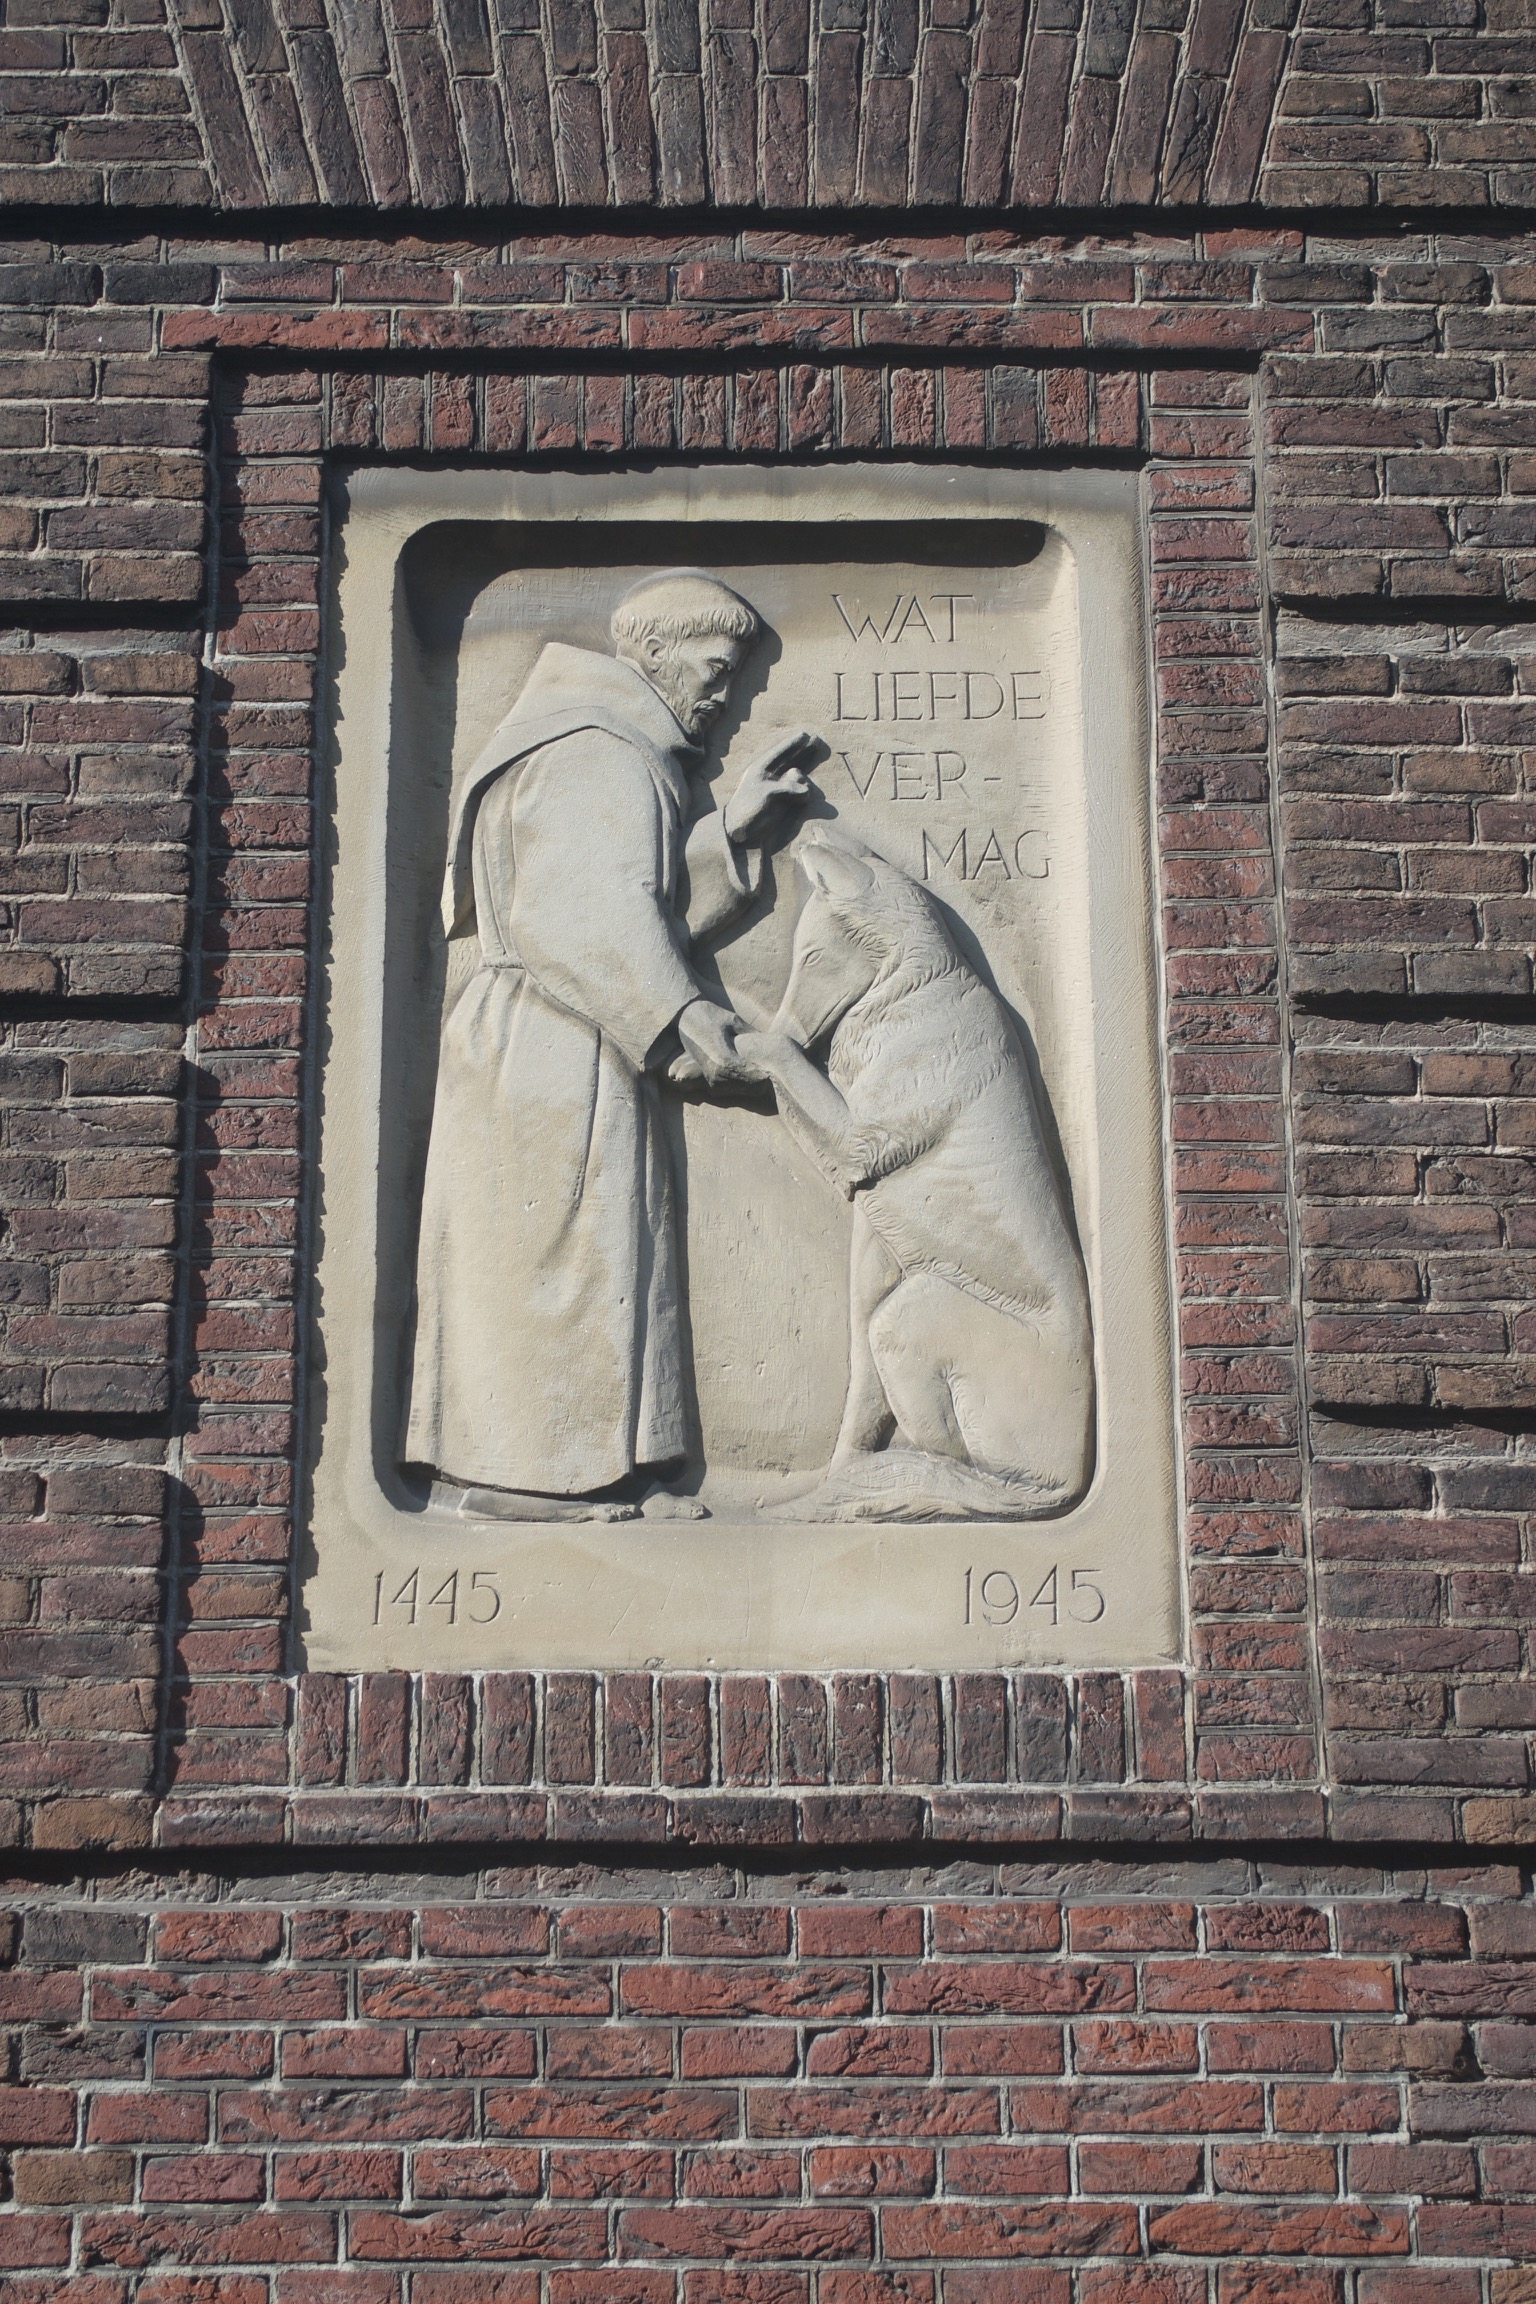 A carving of a monk blessing a dog, inscribed with the dates 1445 and 1945 in the bottom corners and